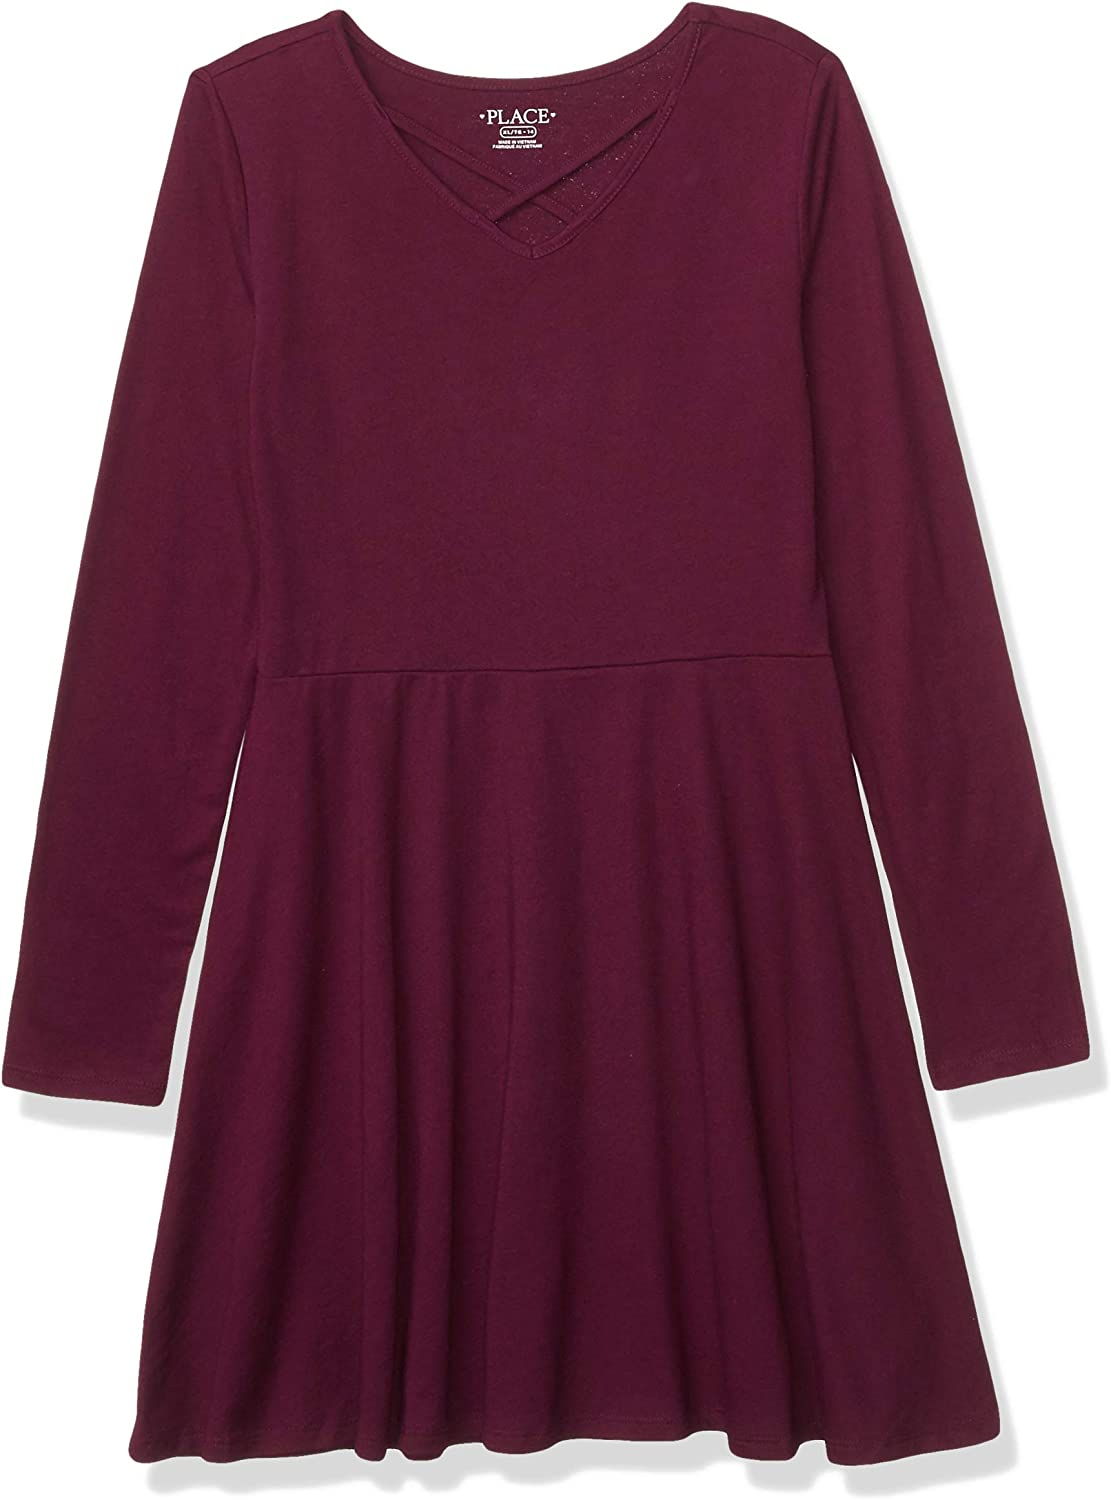 The Children's Place Girls' Solid Big Import Pleated Dresses Free shipping